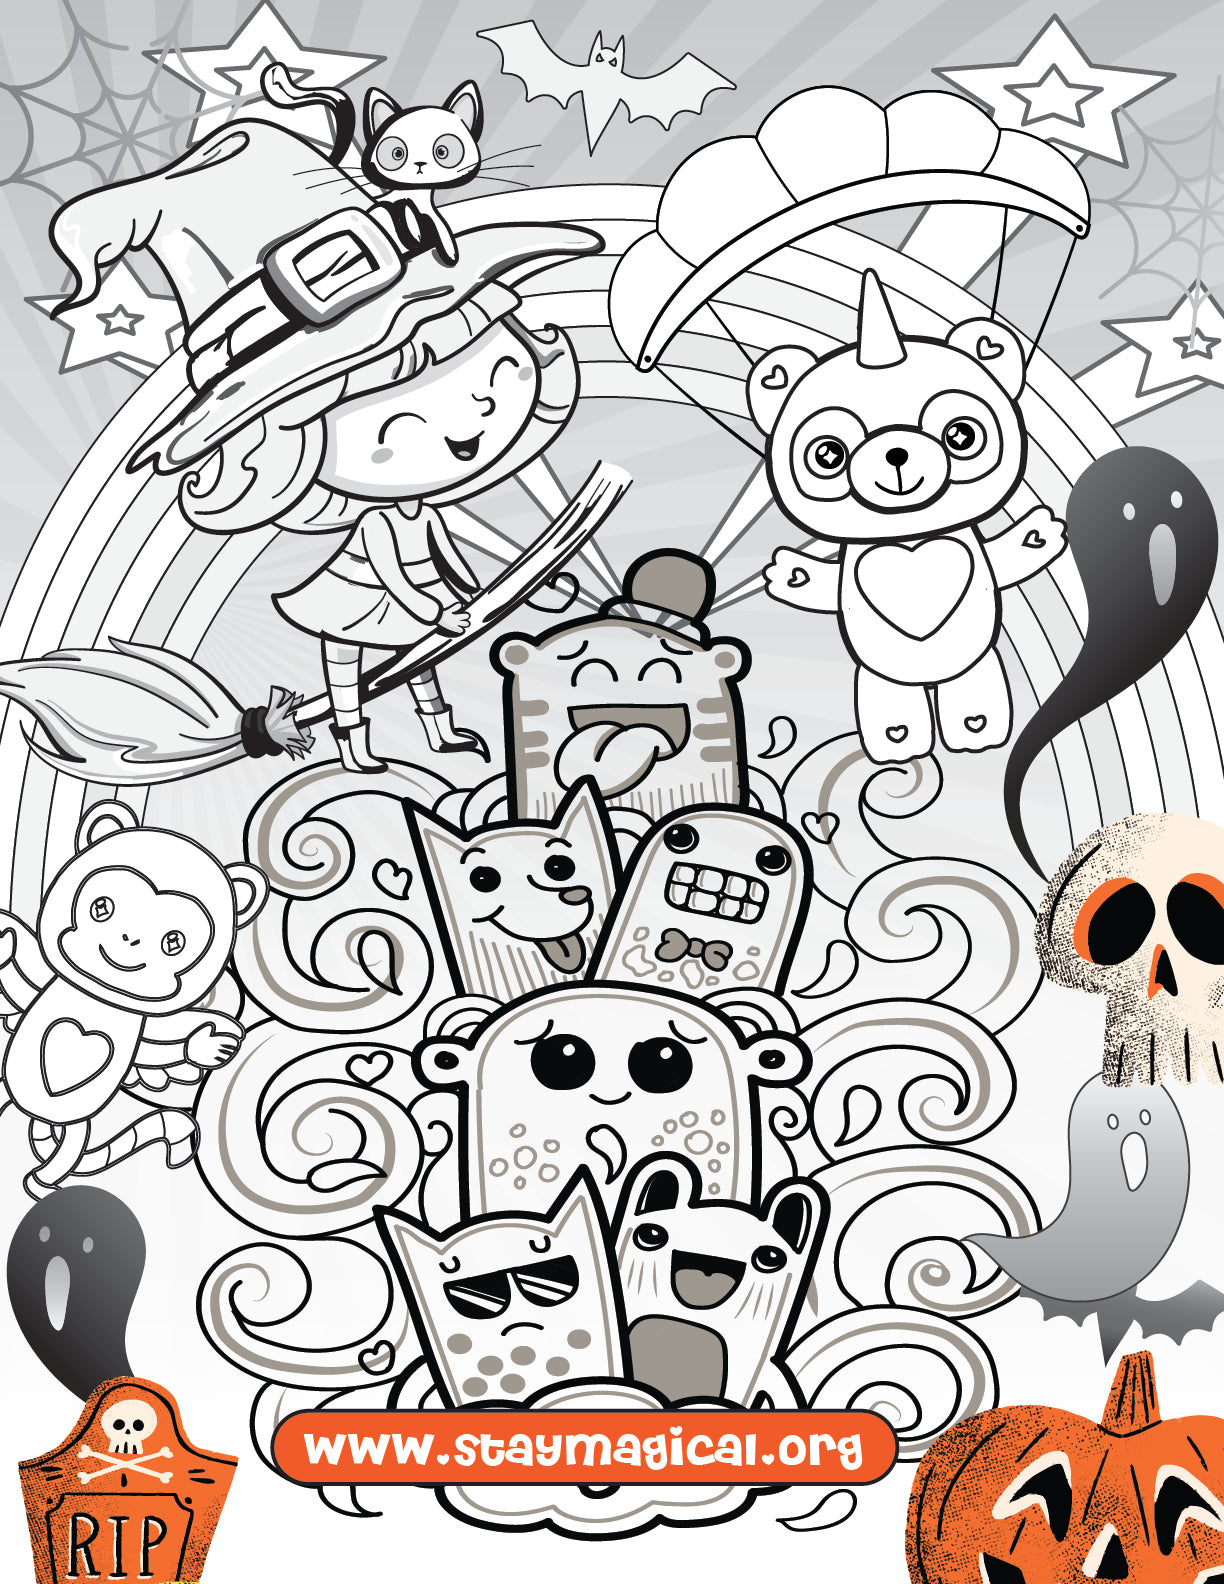 Panda & Unicorn 5 Pack Coloring Sheets FREE - Panducorn.com